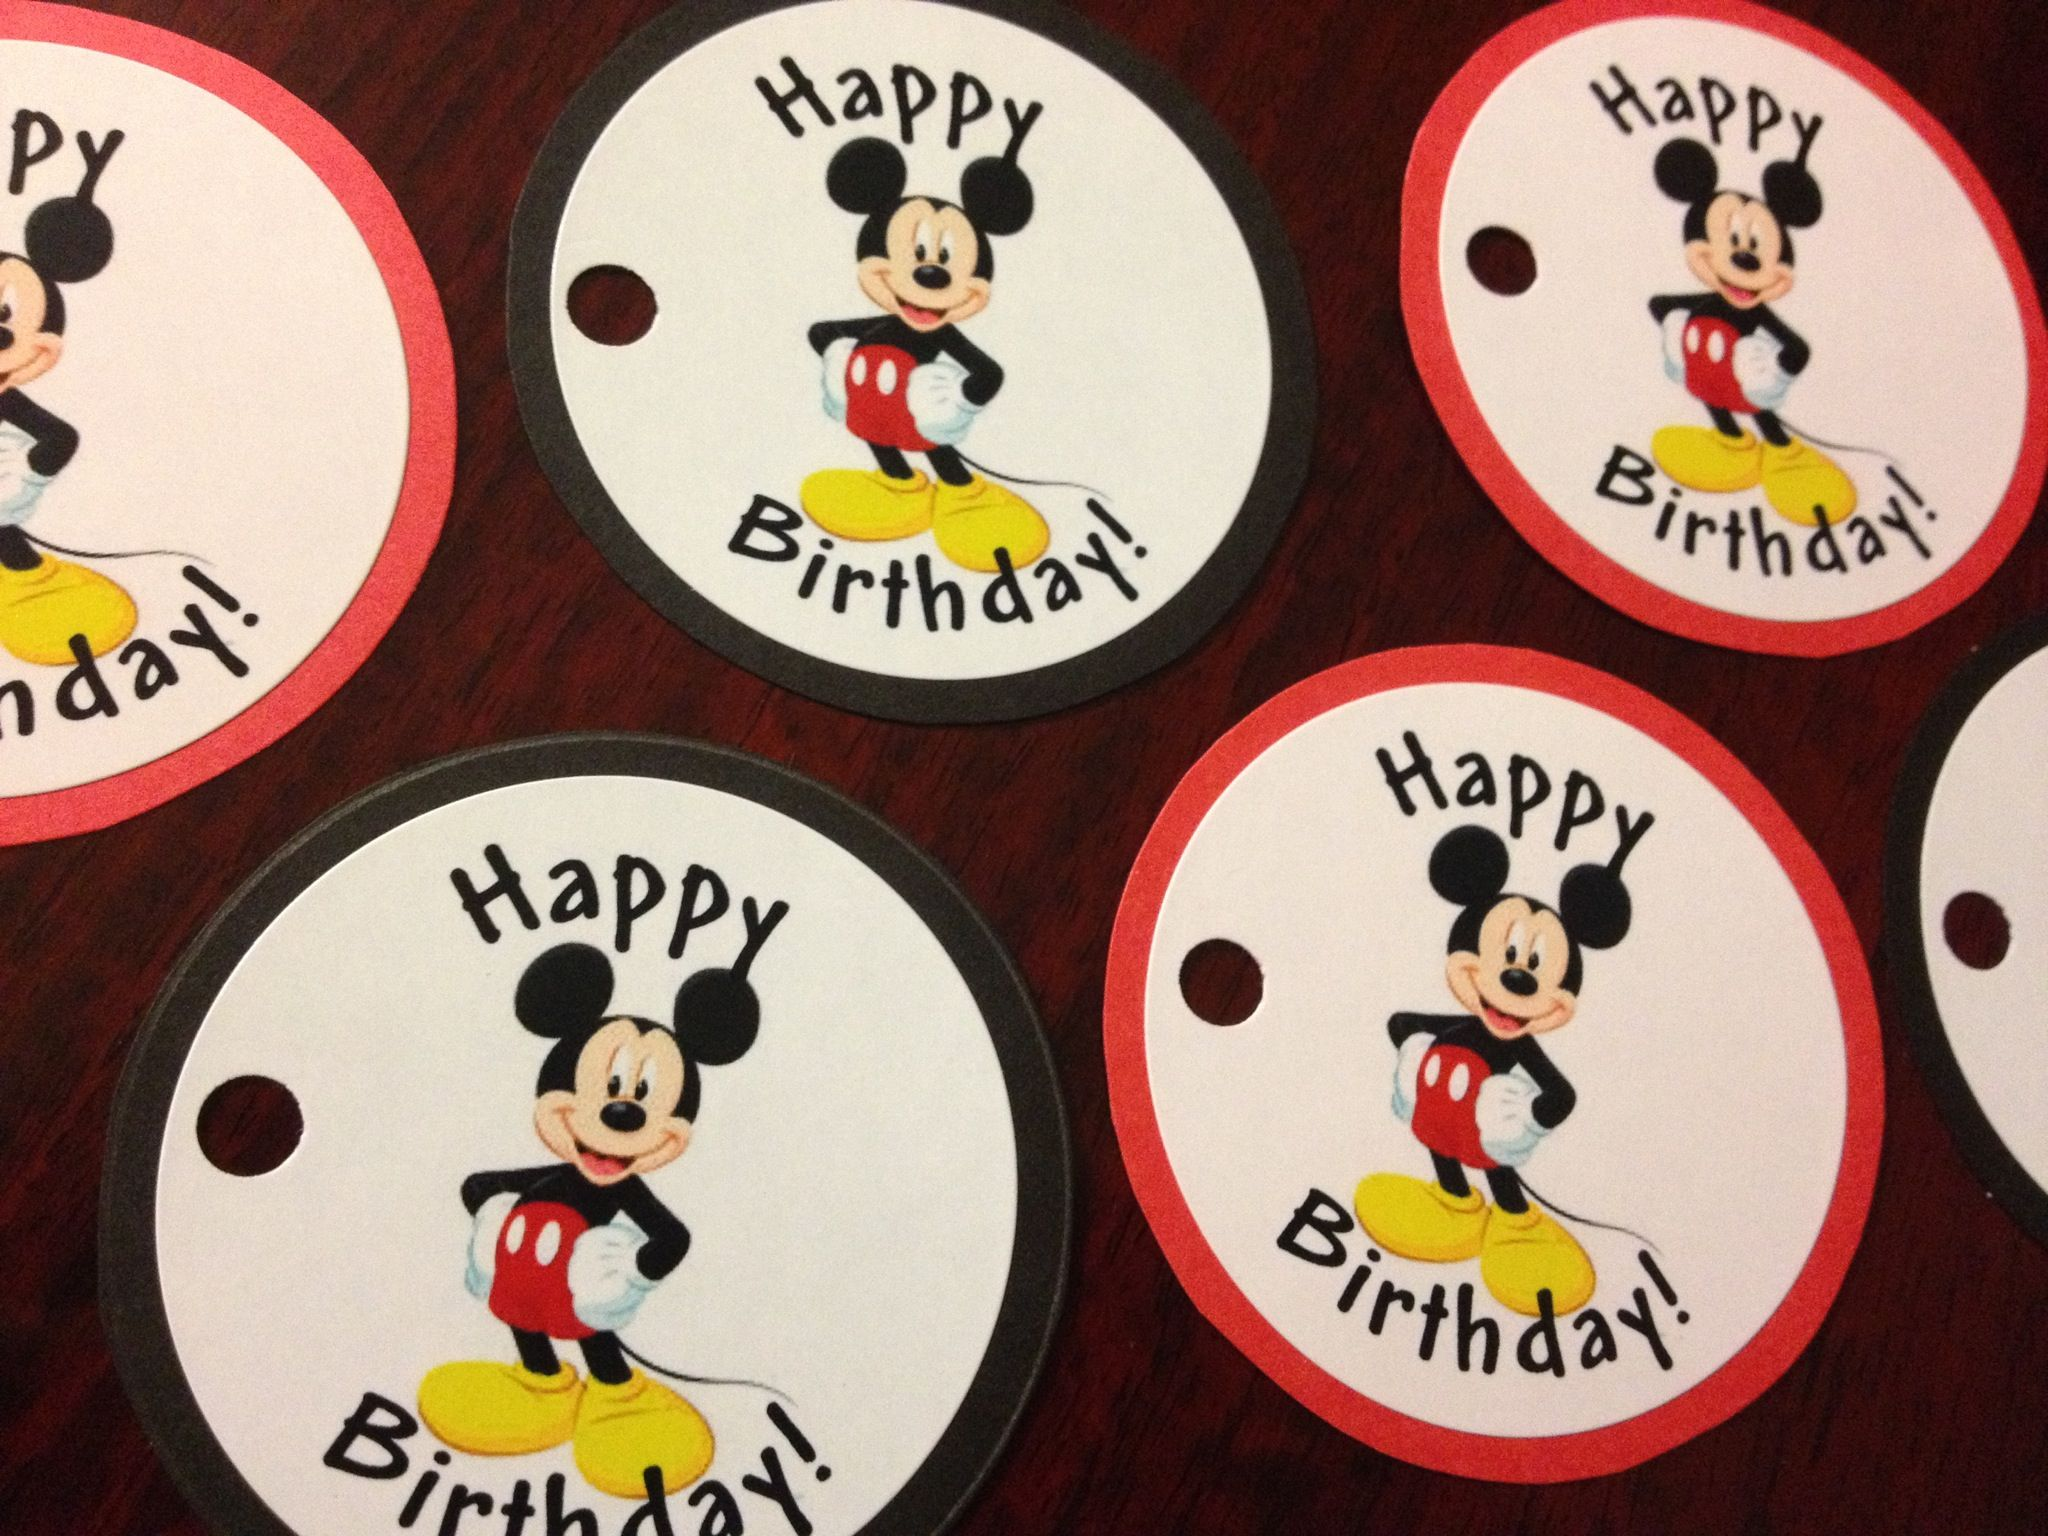 Mickey Mouse Cake Pops Favor Tags Can be personalized to suit your event! $17 for up to 2 dozen (additional for more than 24) www.misslulussweettreats.com